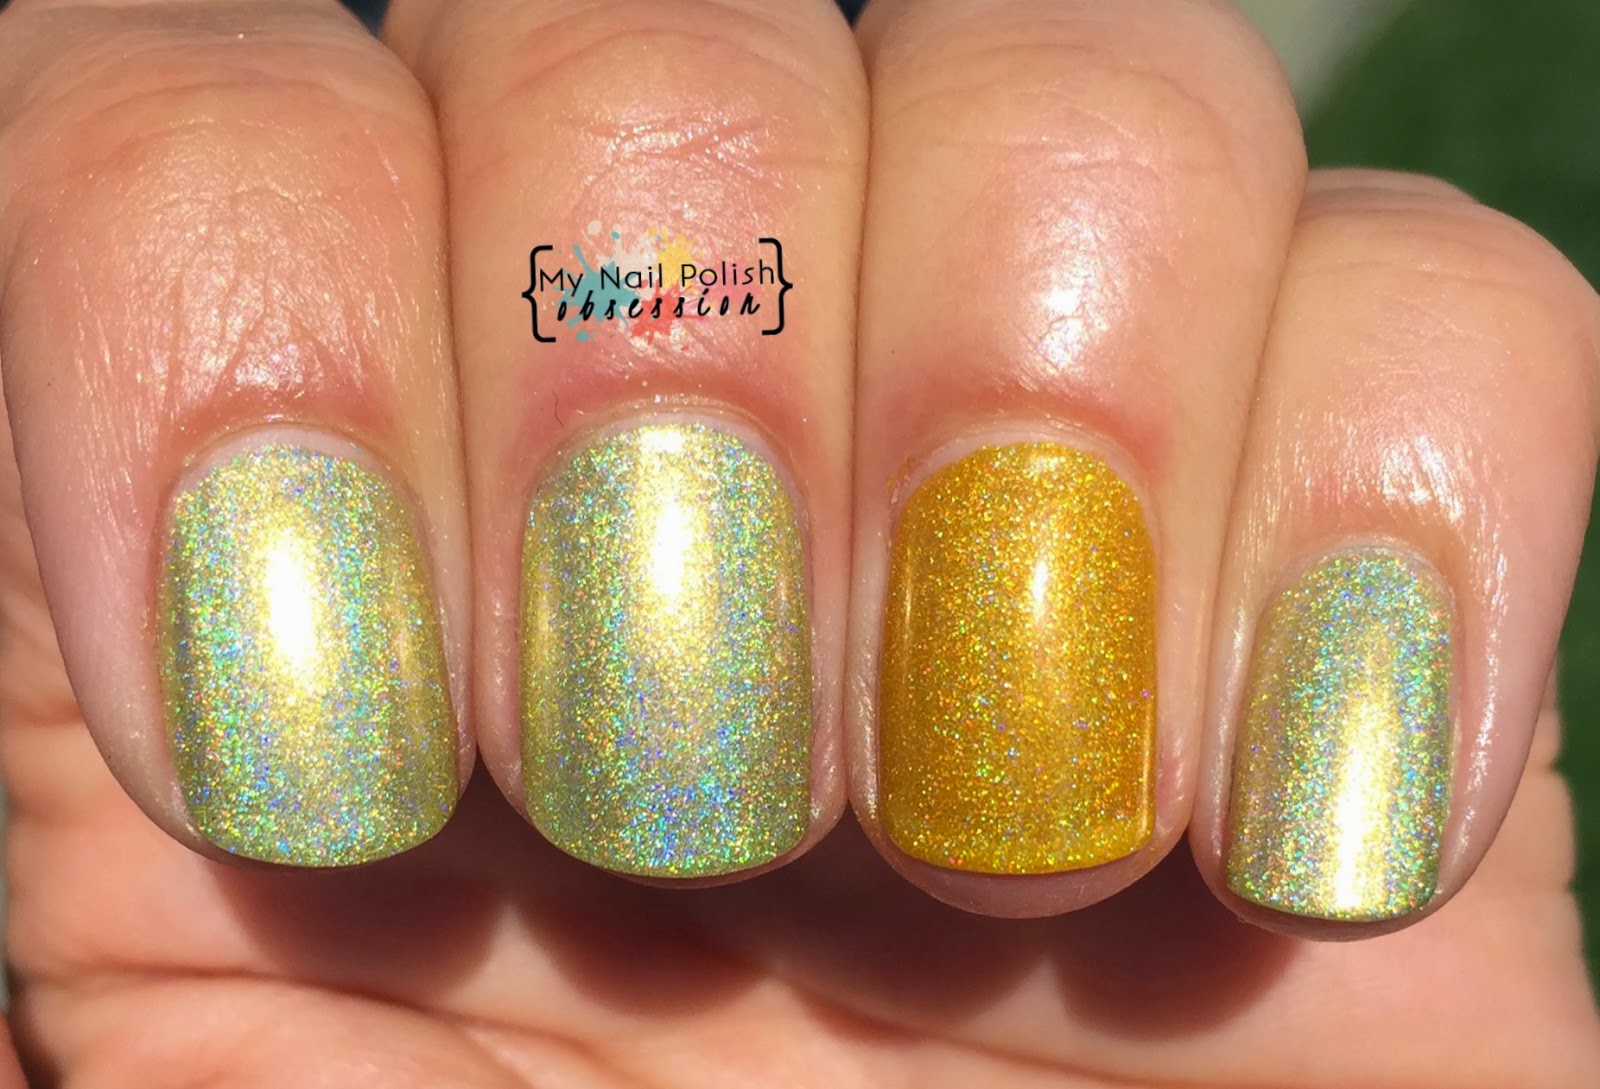 Comparison of Smitten Polish An Opera of Canaries & Sunny Side Up